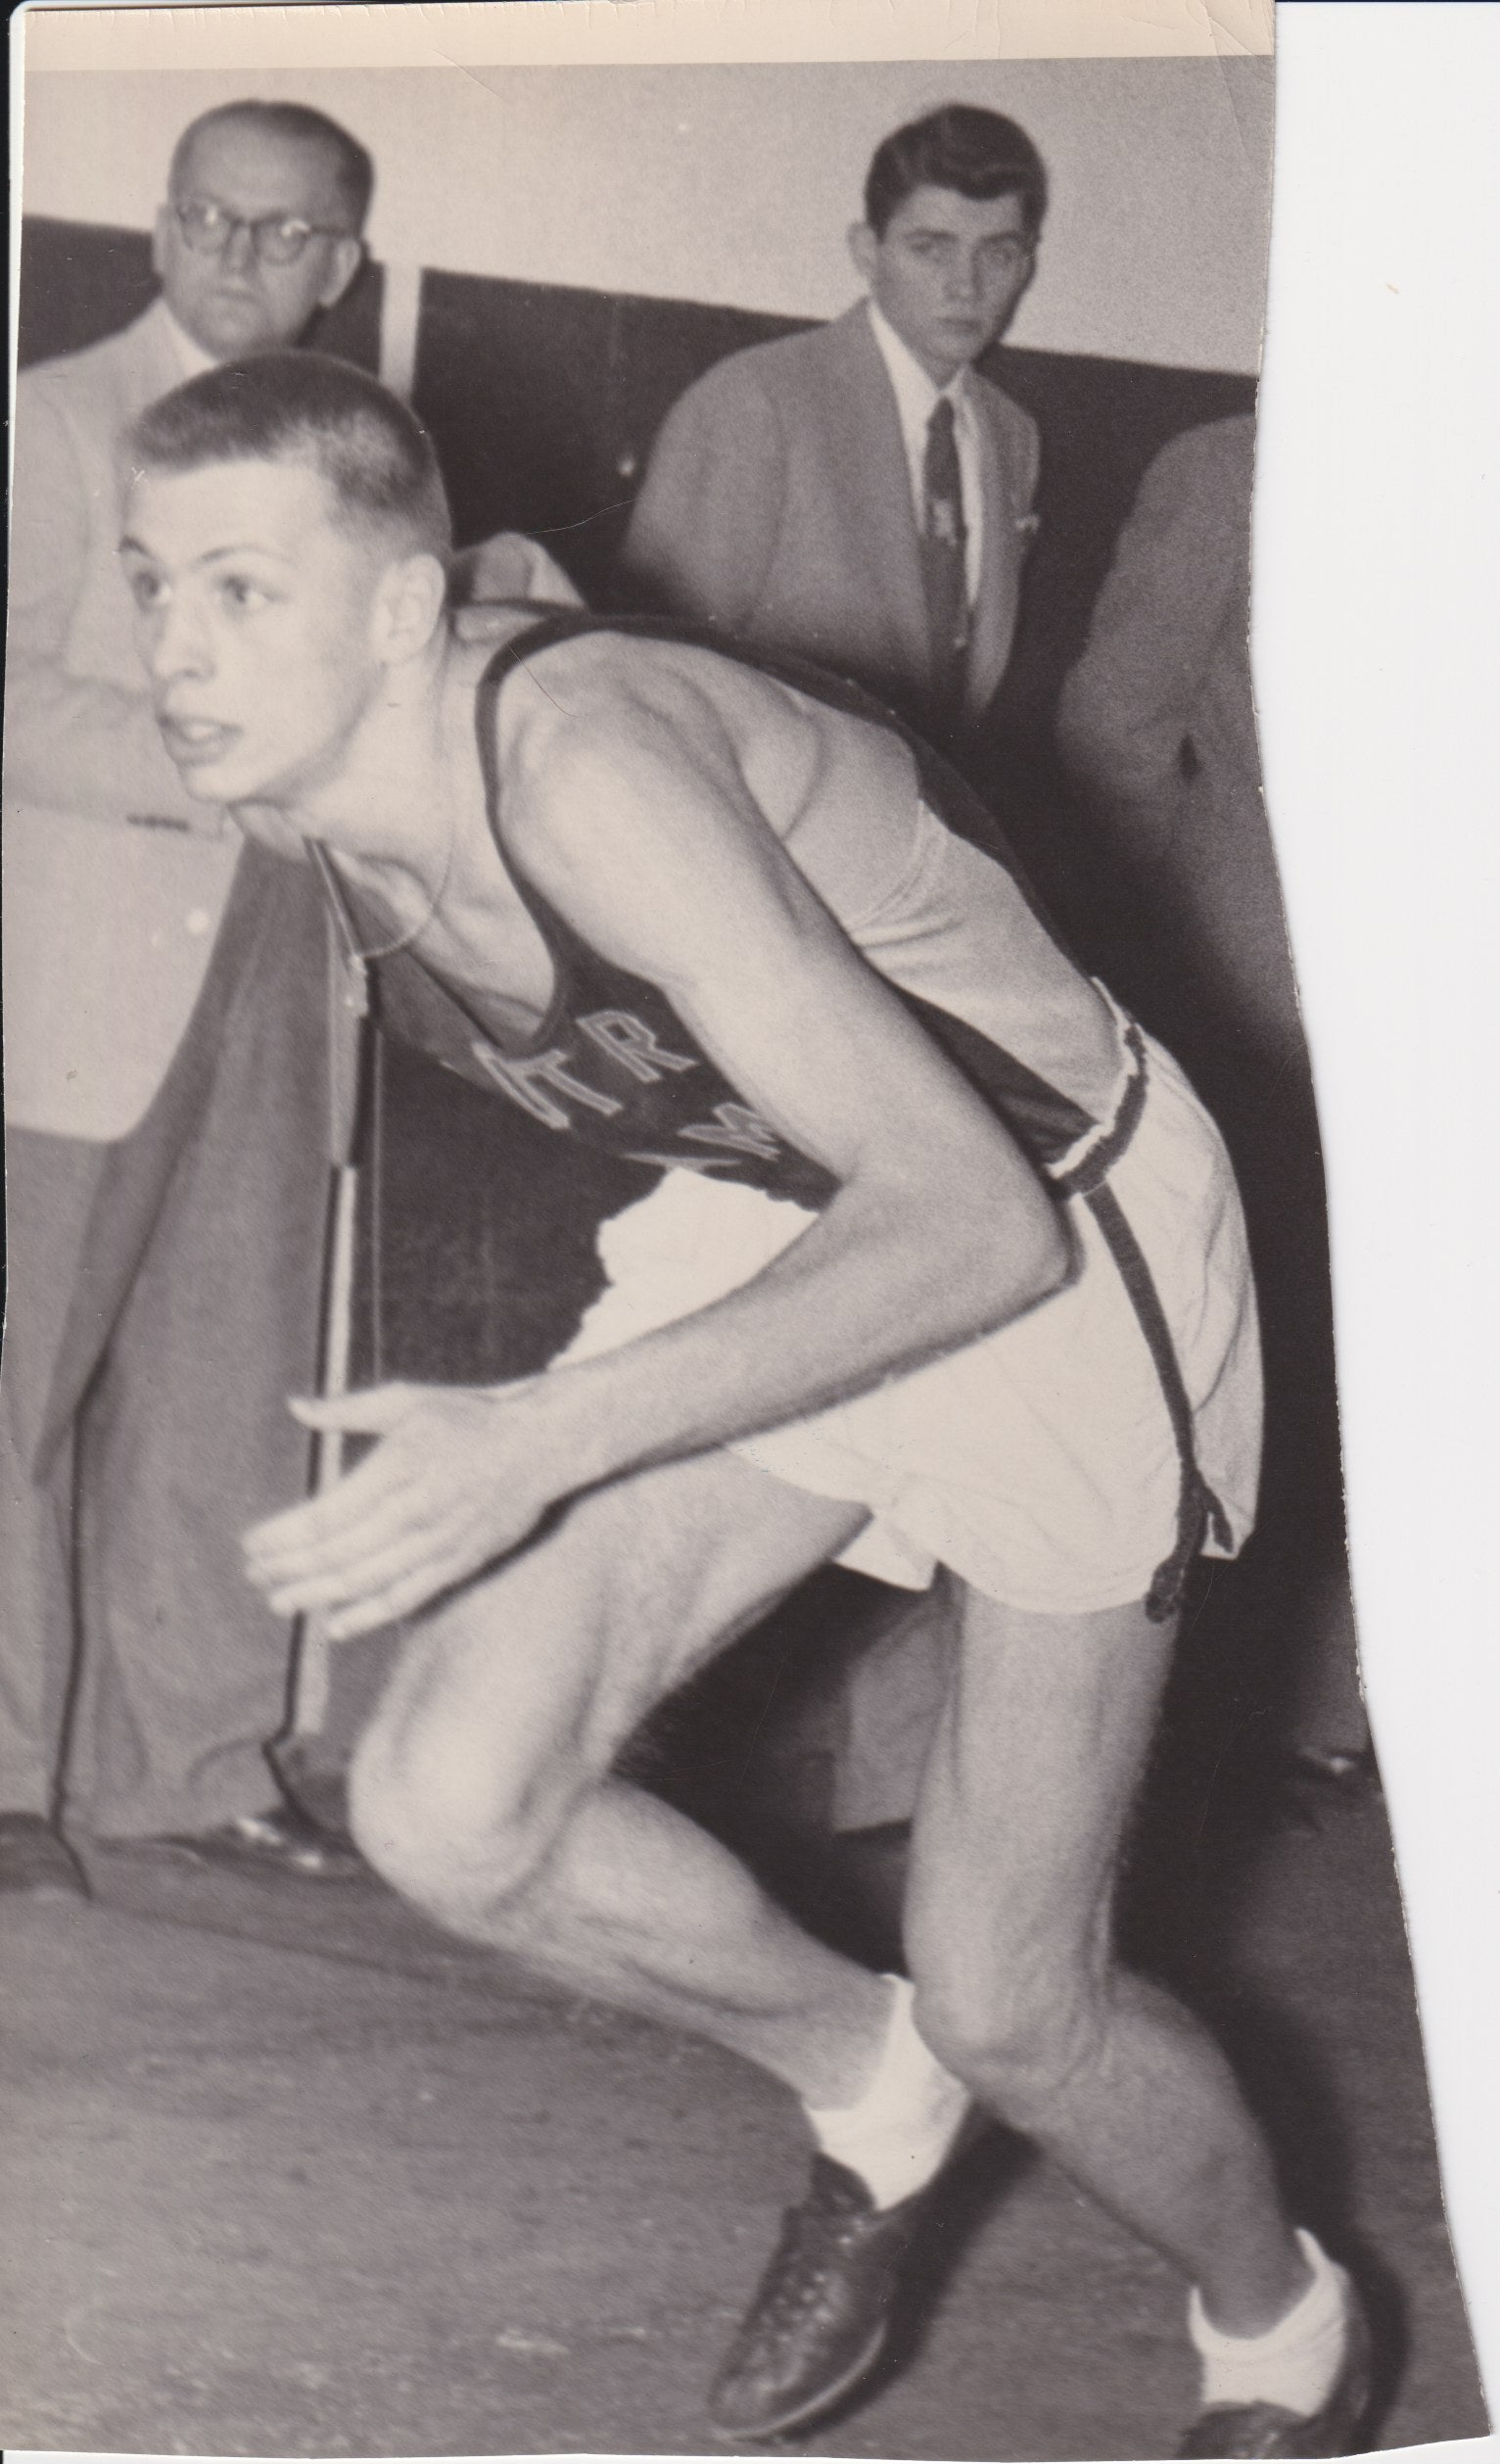 Bill Squires Notre Dame